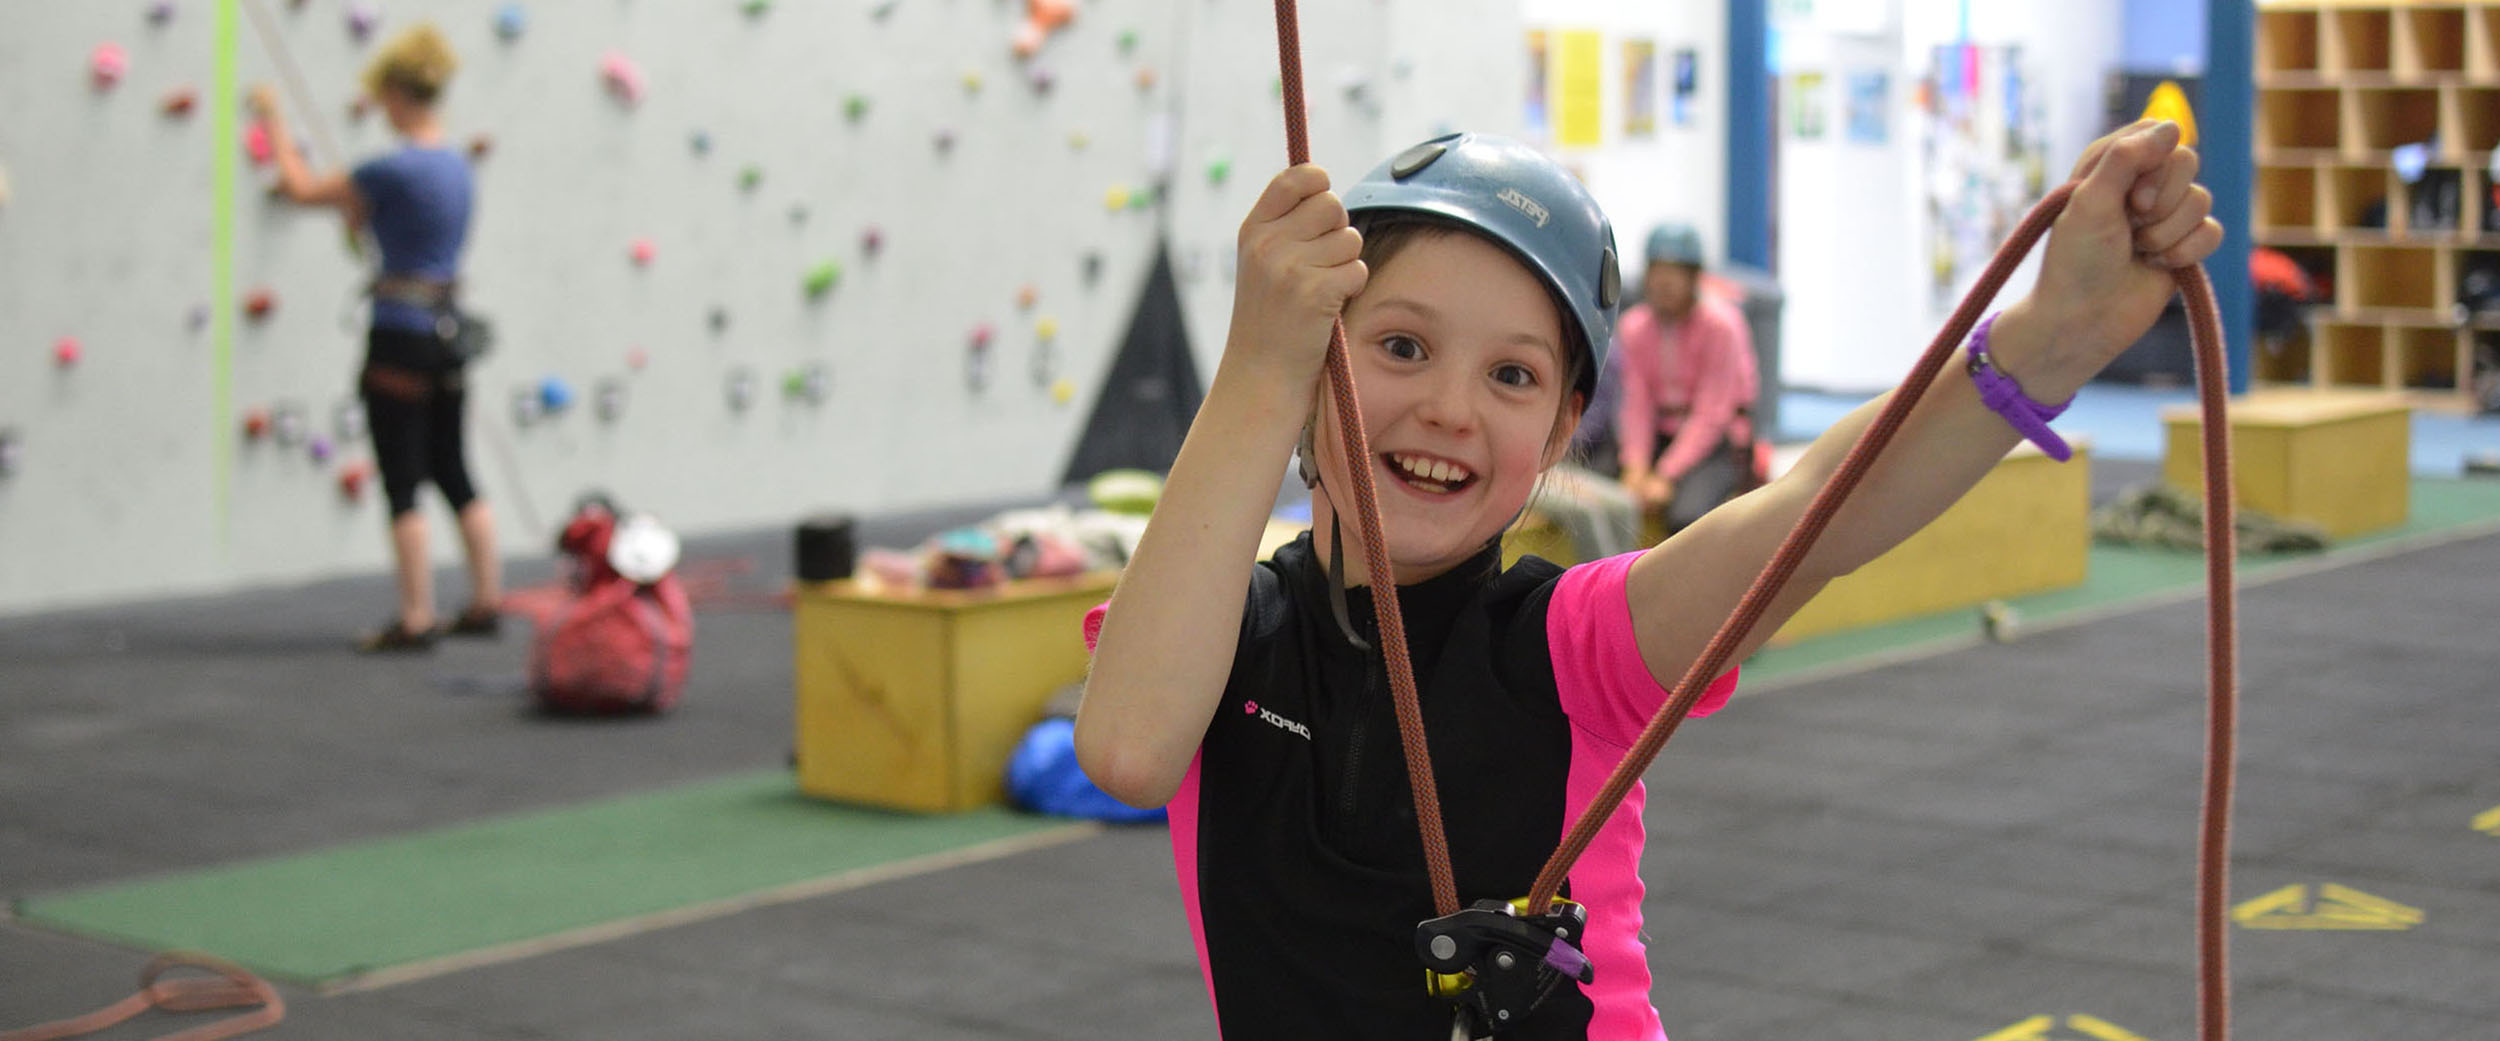 A very happy child holds a rope at an indoor climbing wall